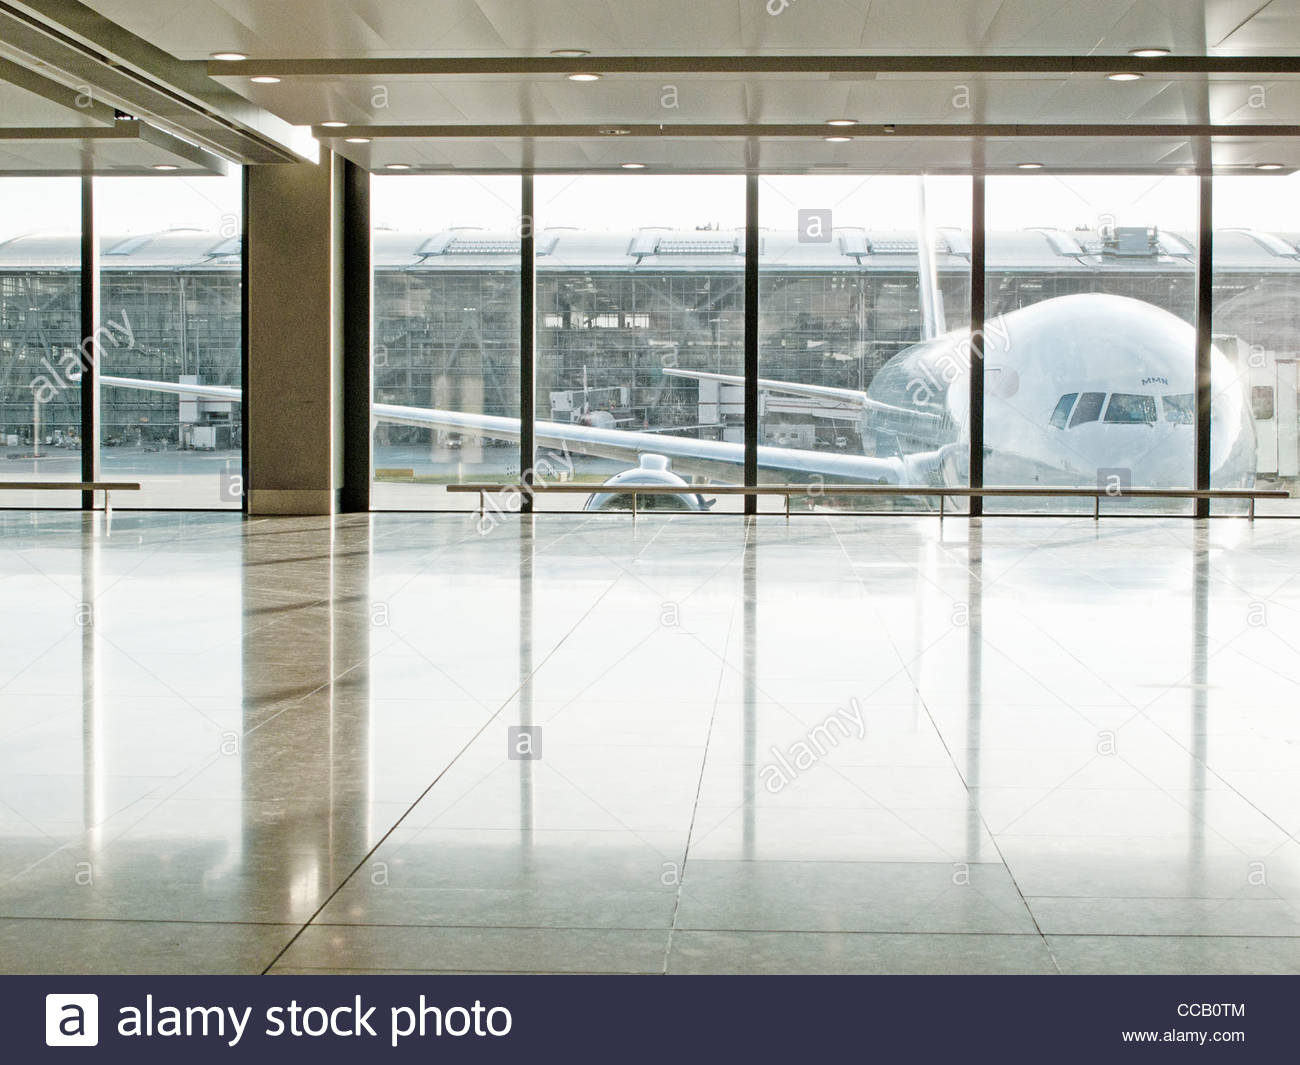 Airplane seen through window in airport terminal - Stock Image